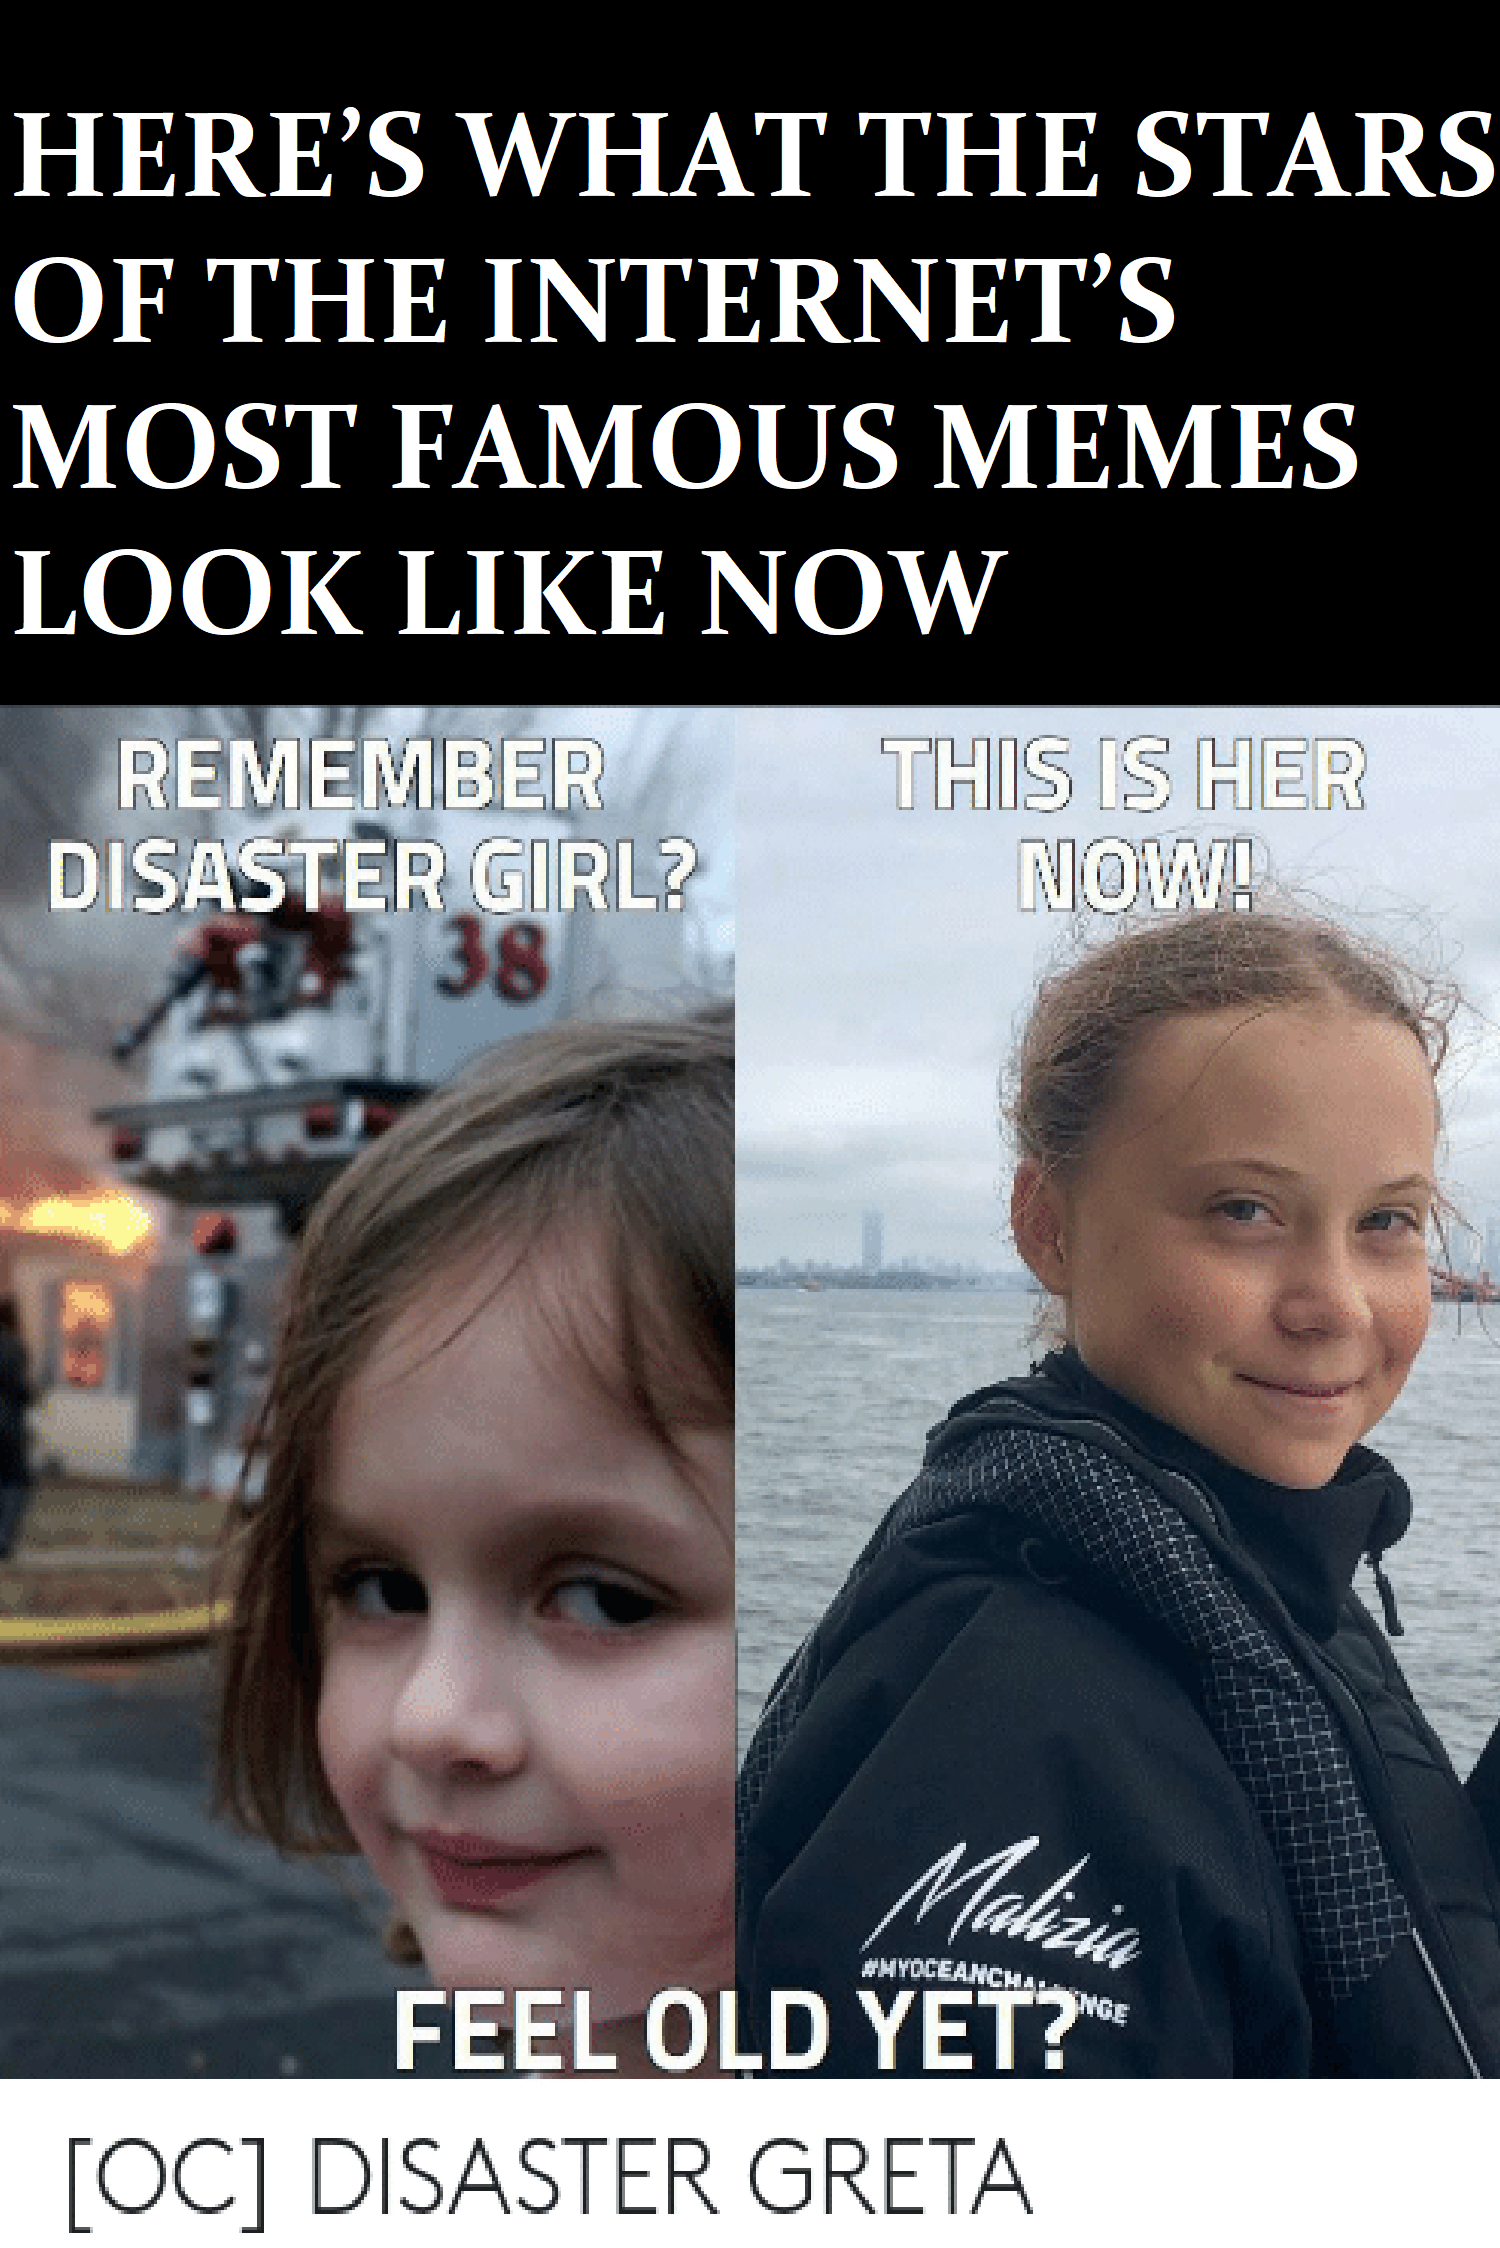 Here S What The Stars Of The Internet S Most Famous Memes Look Like Now Famous Memes Online Photo Album Memes